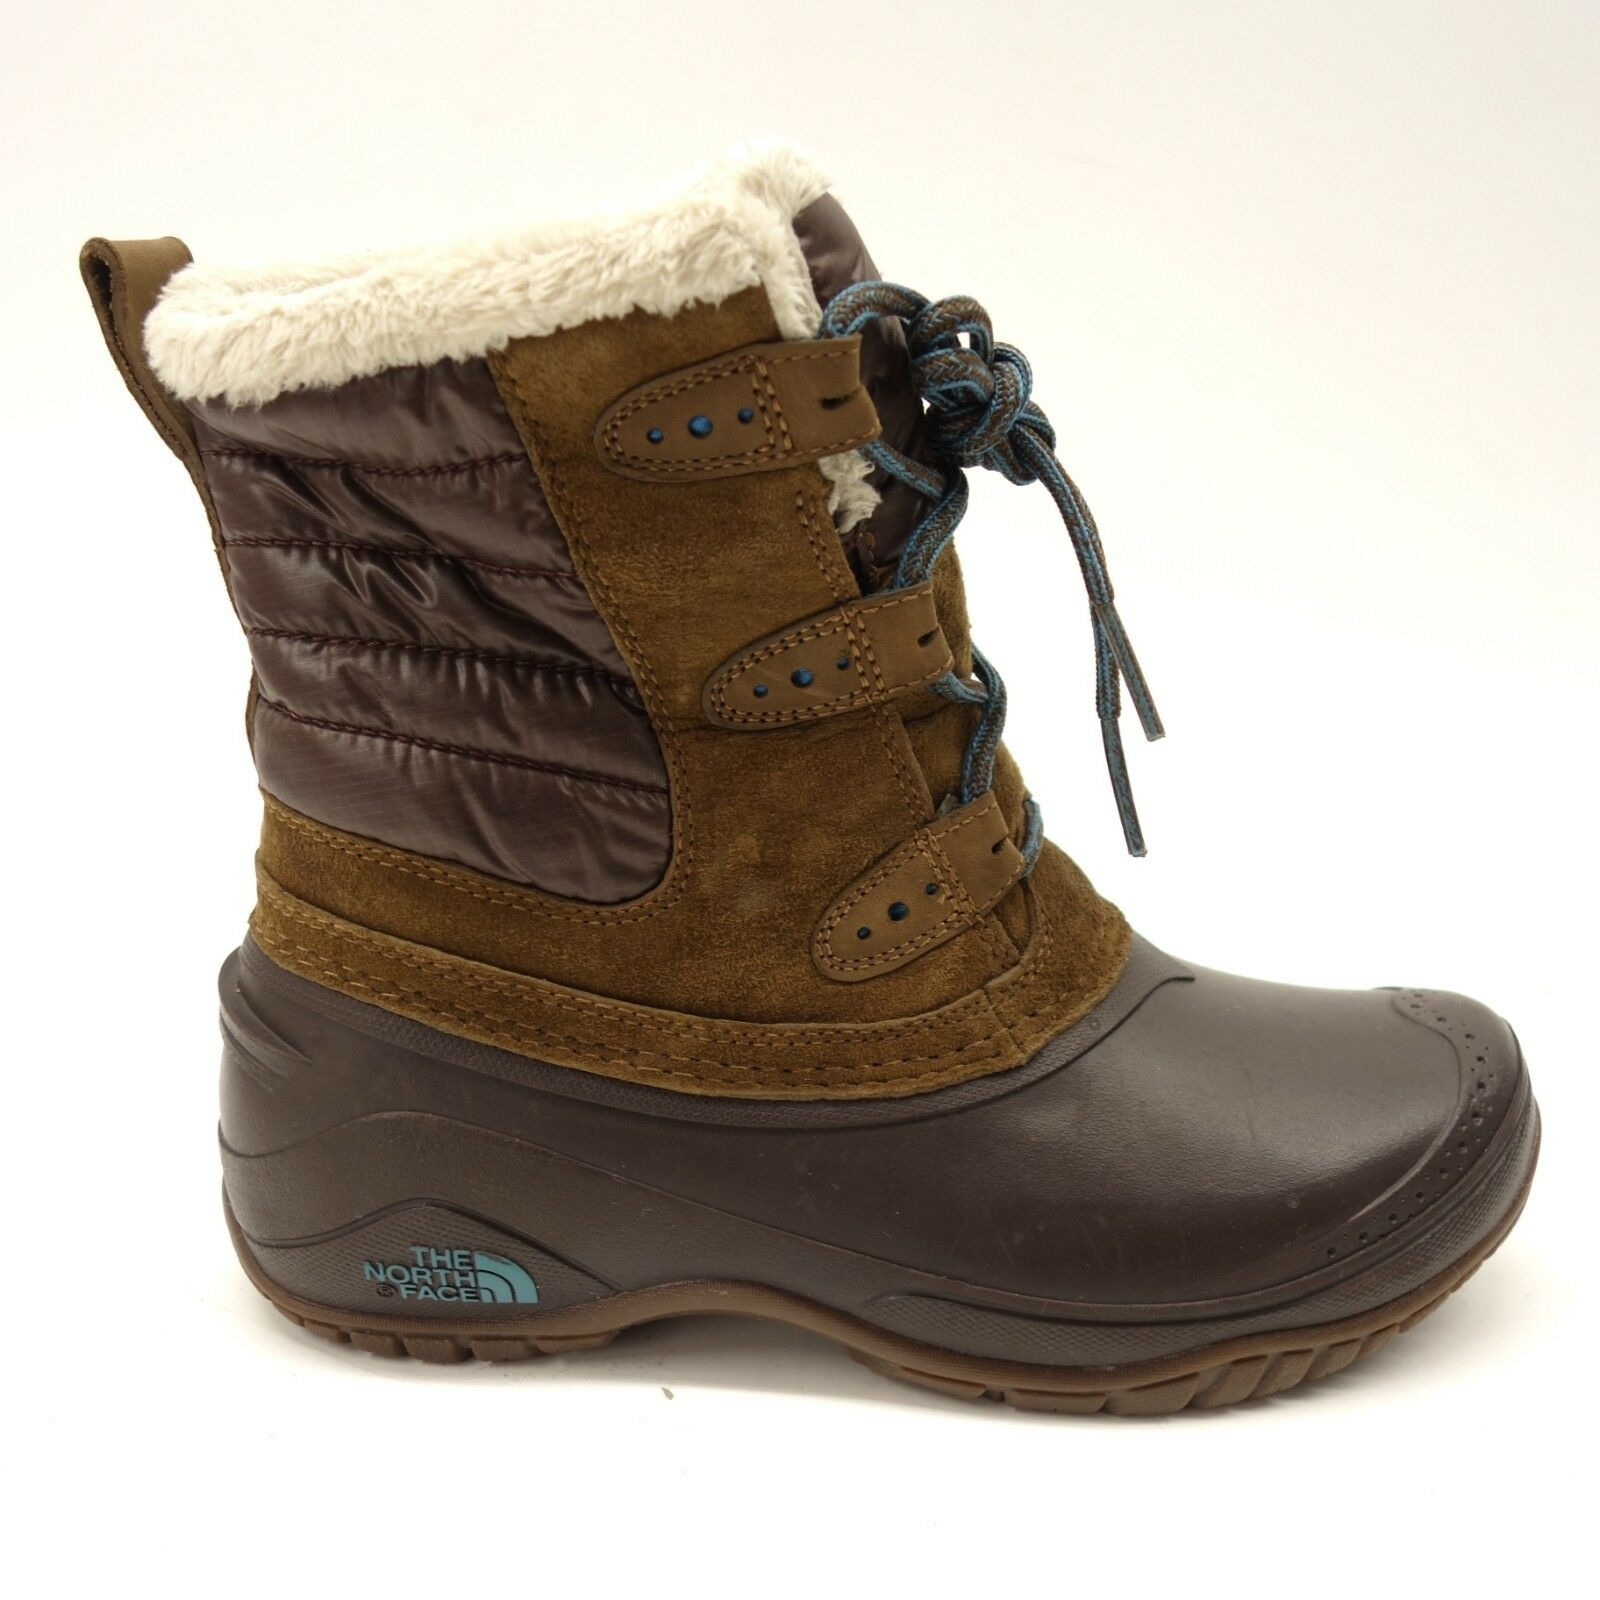 The North Face Womens Shellista II Shorty Insulated Cushioned Winter Boots 6.5